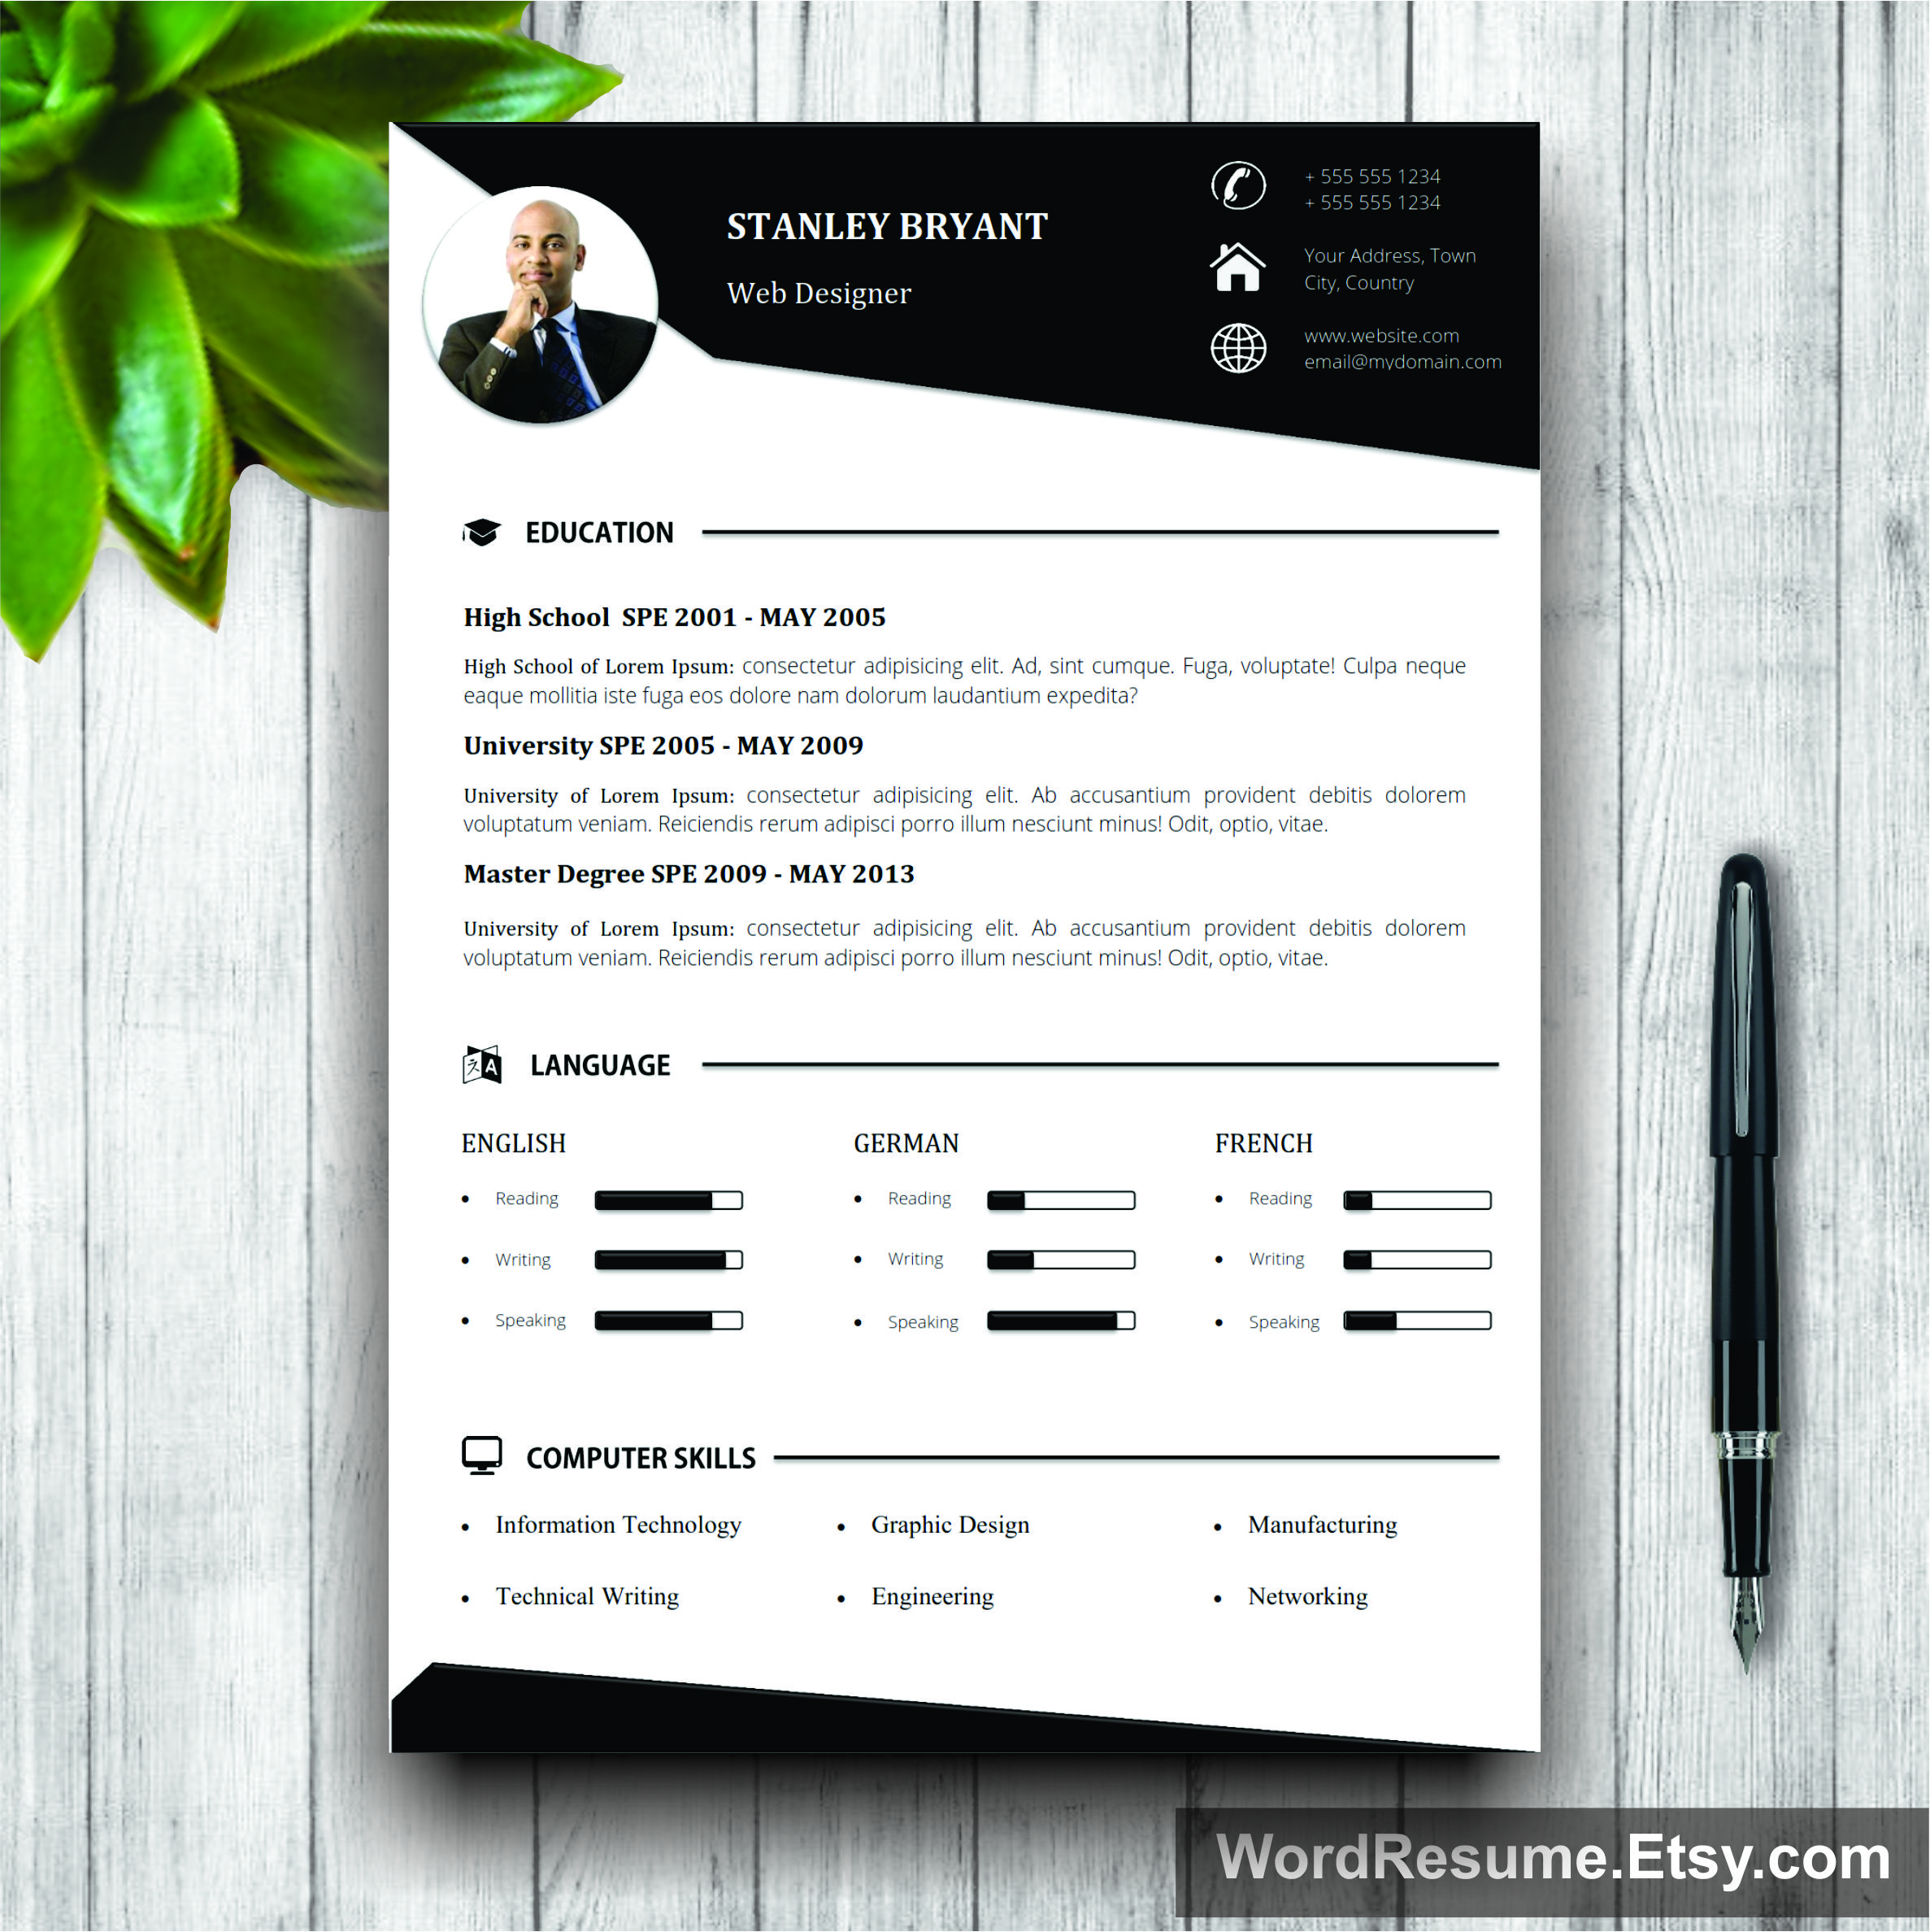 Captivating Resume Background Free Downloadable Resume Templates Within Resume Background Image